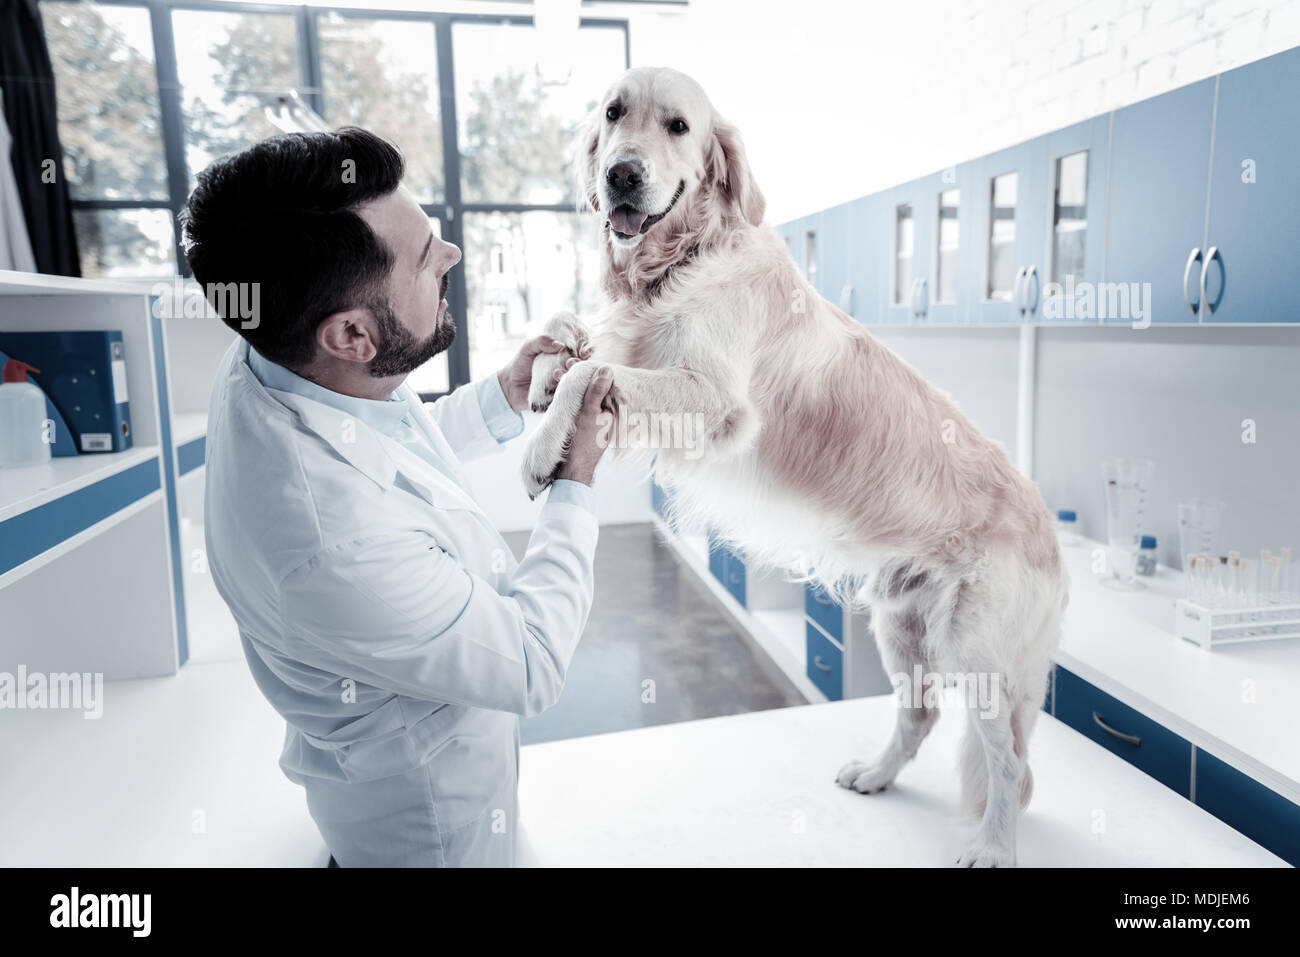 Joyful delighted man looking at the dog - Stock Image